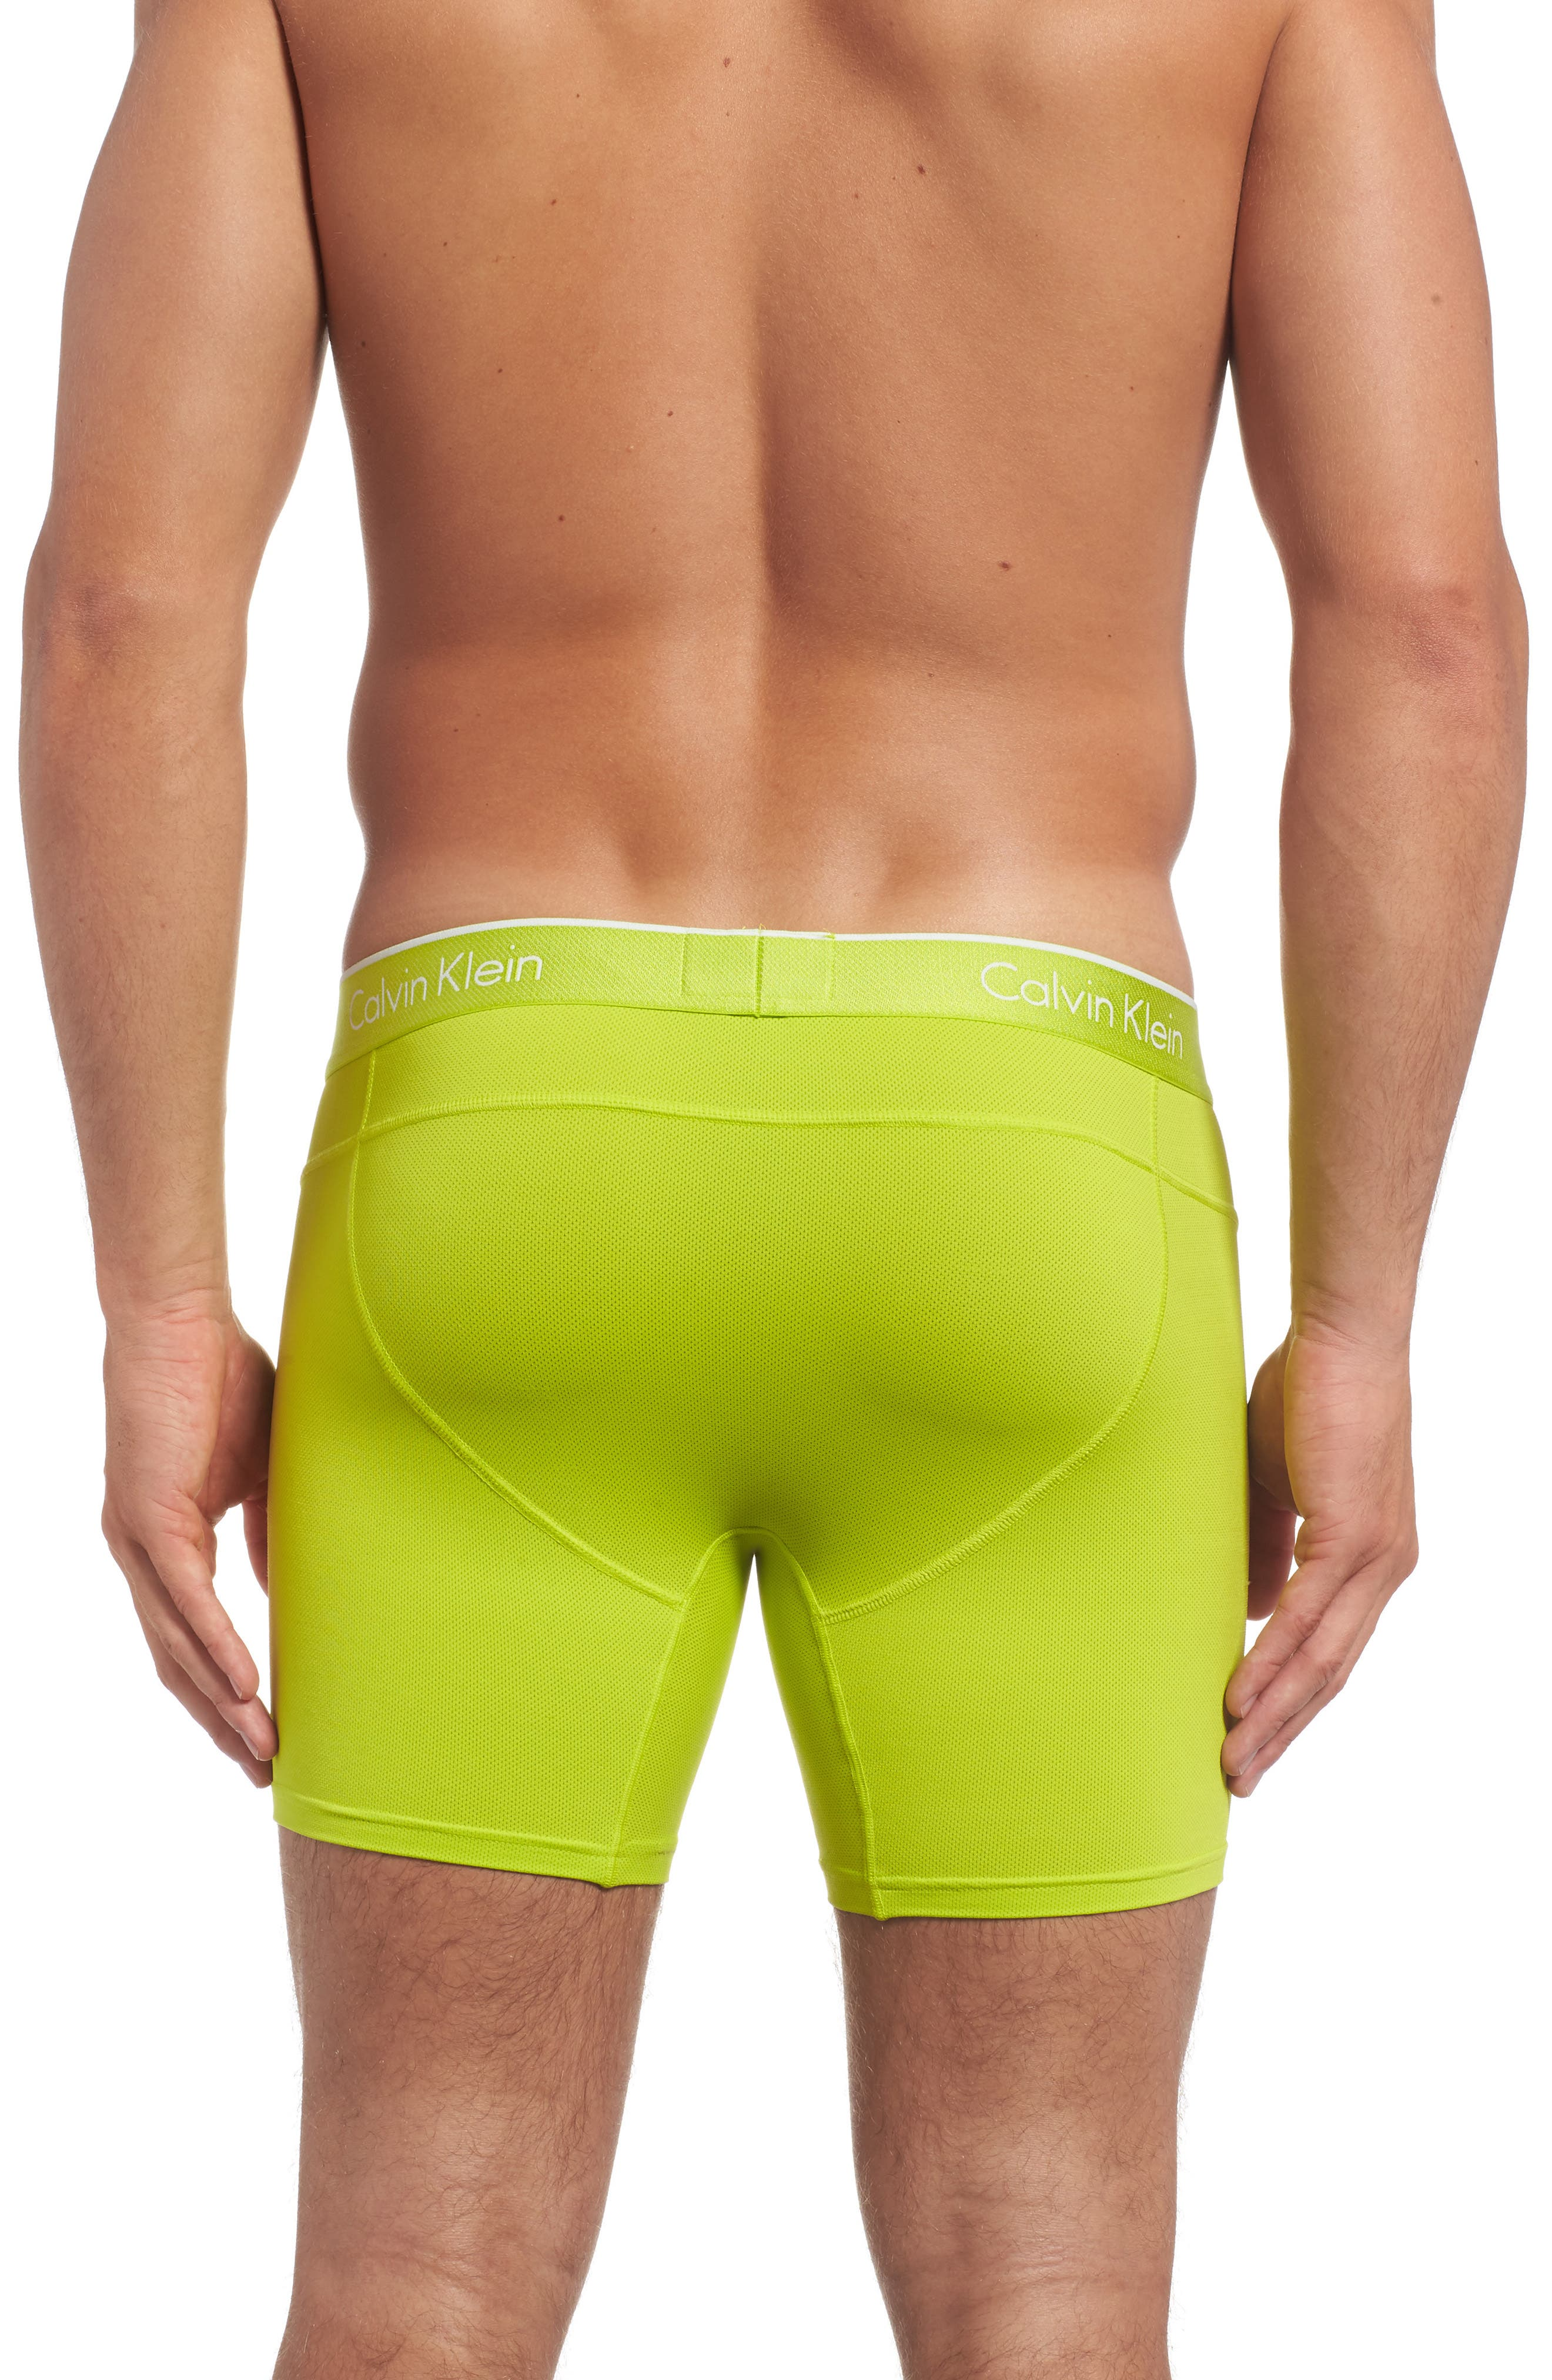 Air FX Low Rise Boxer Briefs,                             Alternate thumbnail 2, color,                             306